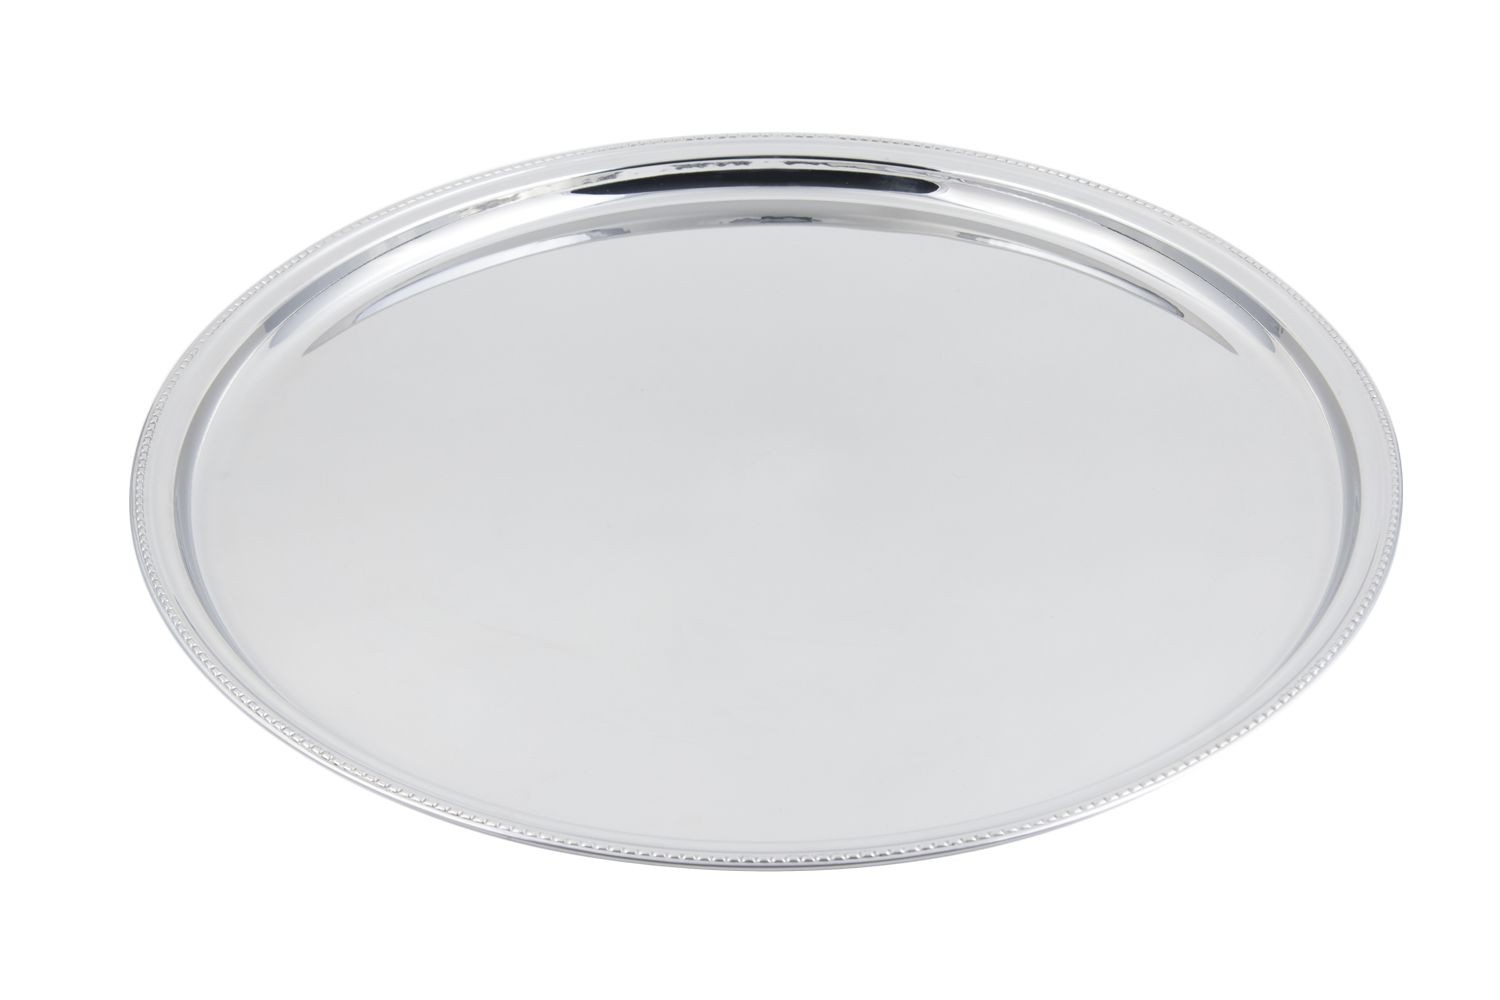 "Bon Chef 61333 Stainless Steel Round Tray with Bead Border, 20"" Dia."